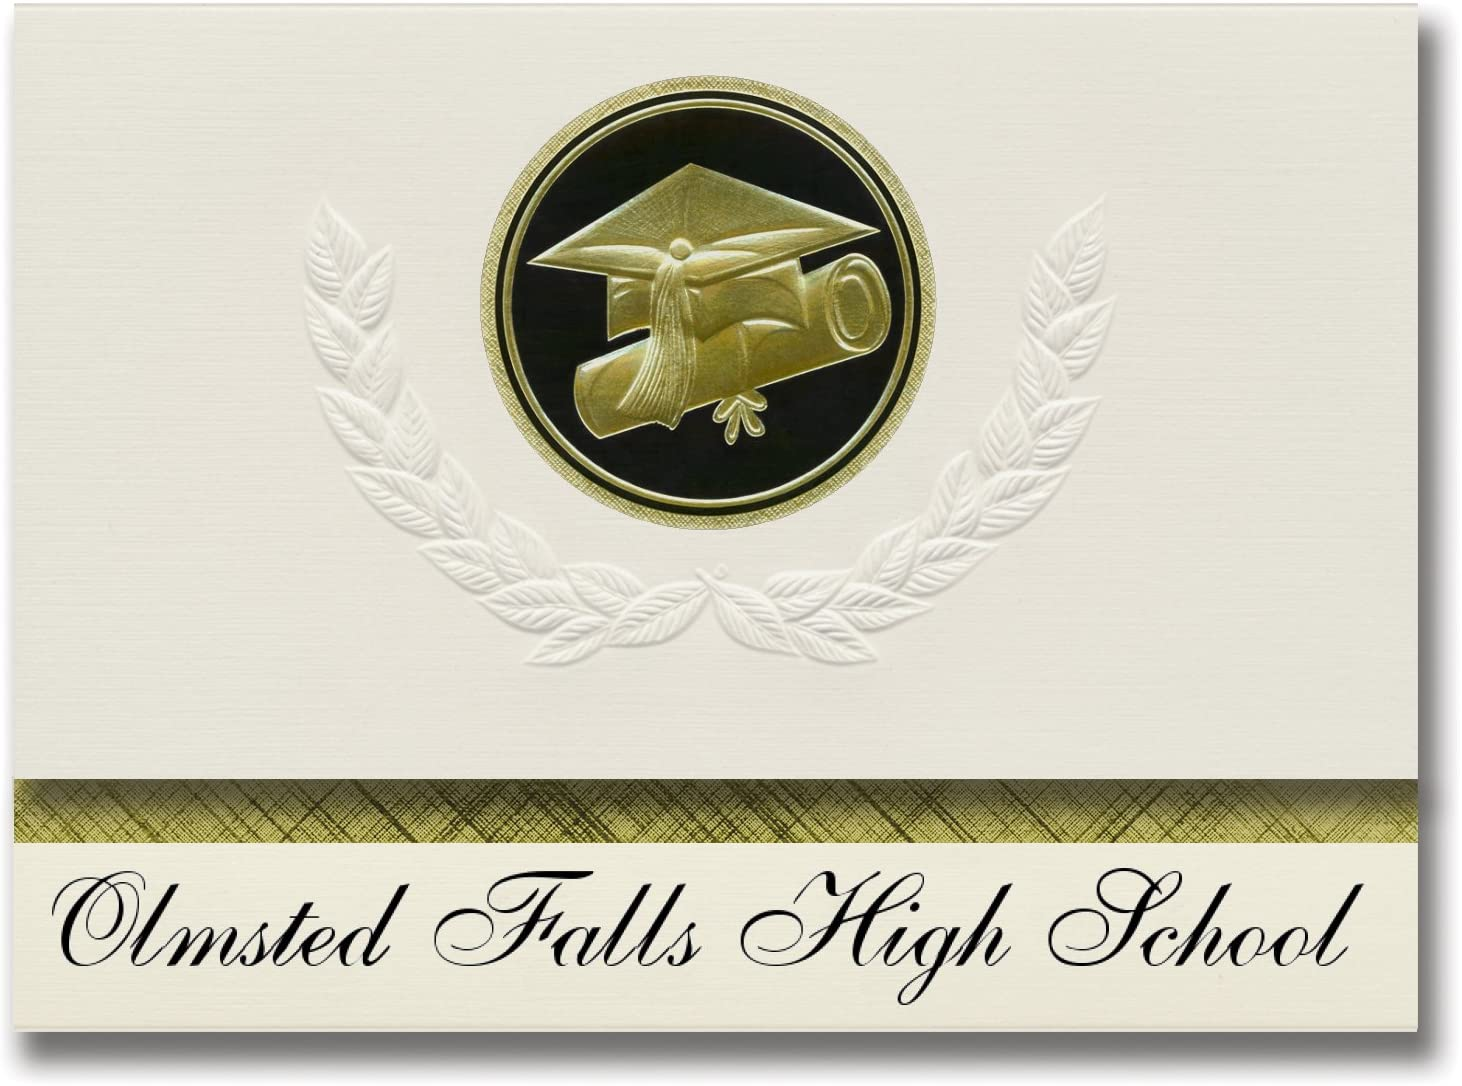 Signature Announcements Olmsted Falls High School (Olmsted Falls, OH) Graduation Announcements, Presidential style, Elite package of 25 Cap & Diploma Seal Black & Gold